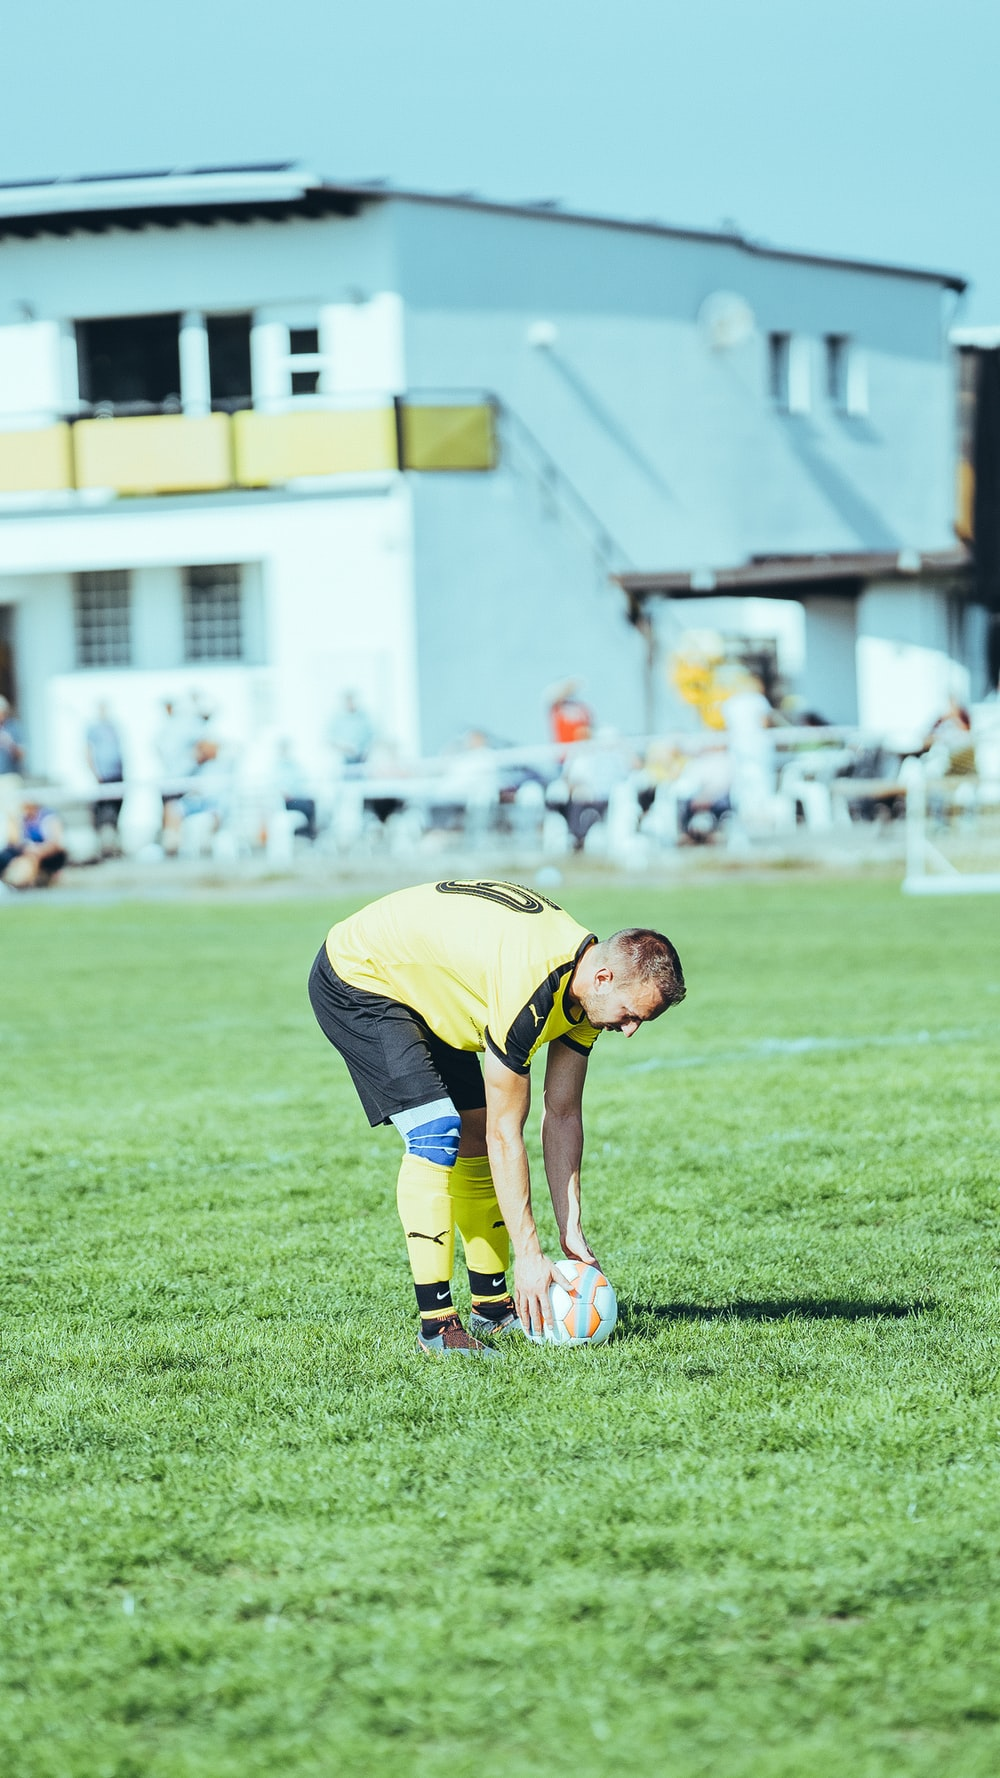 man in yellow shirt and black shorts playing soccer during daytime